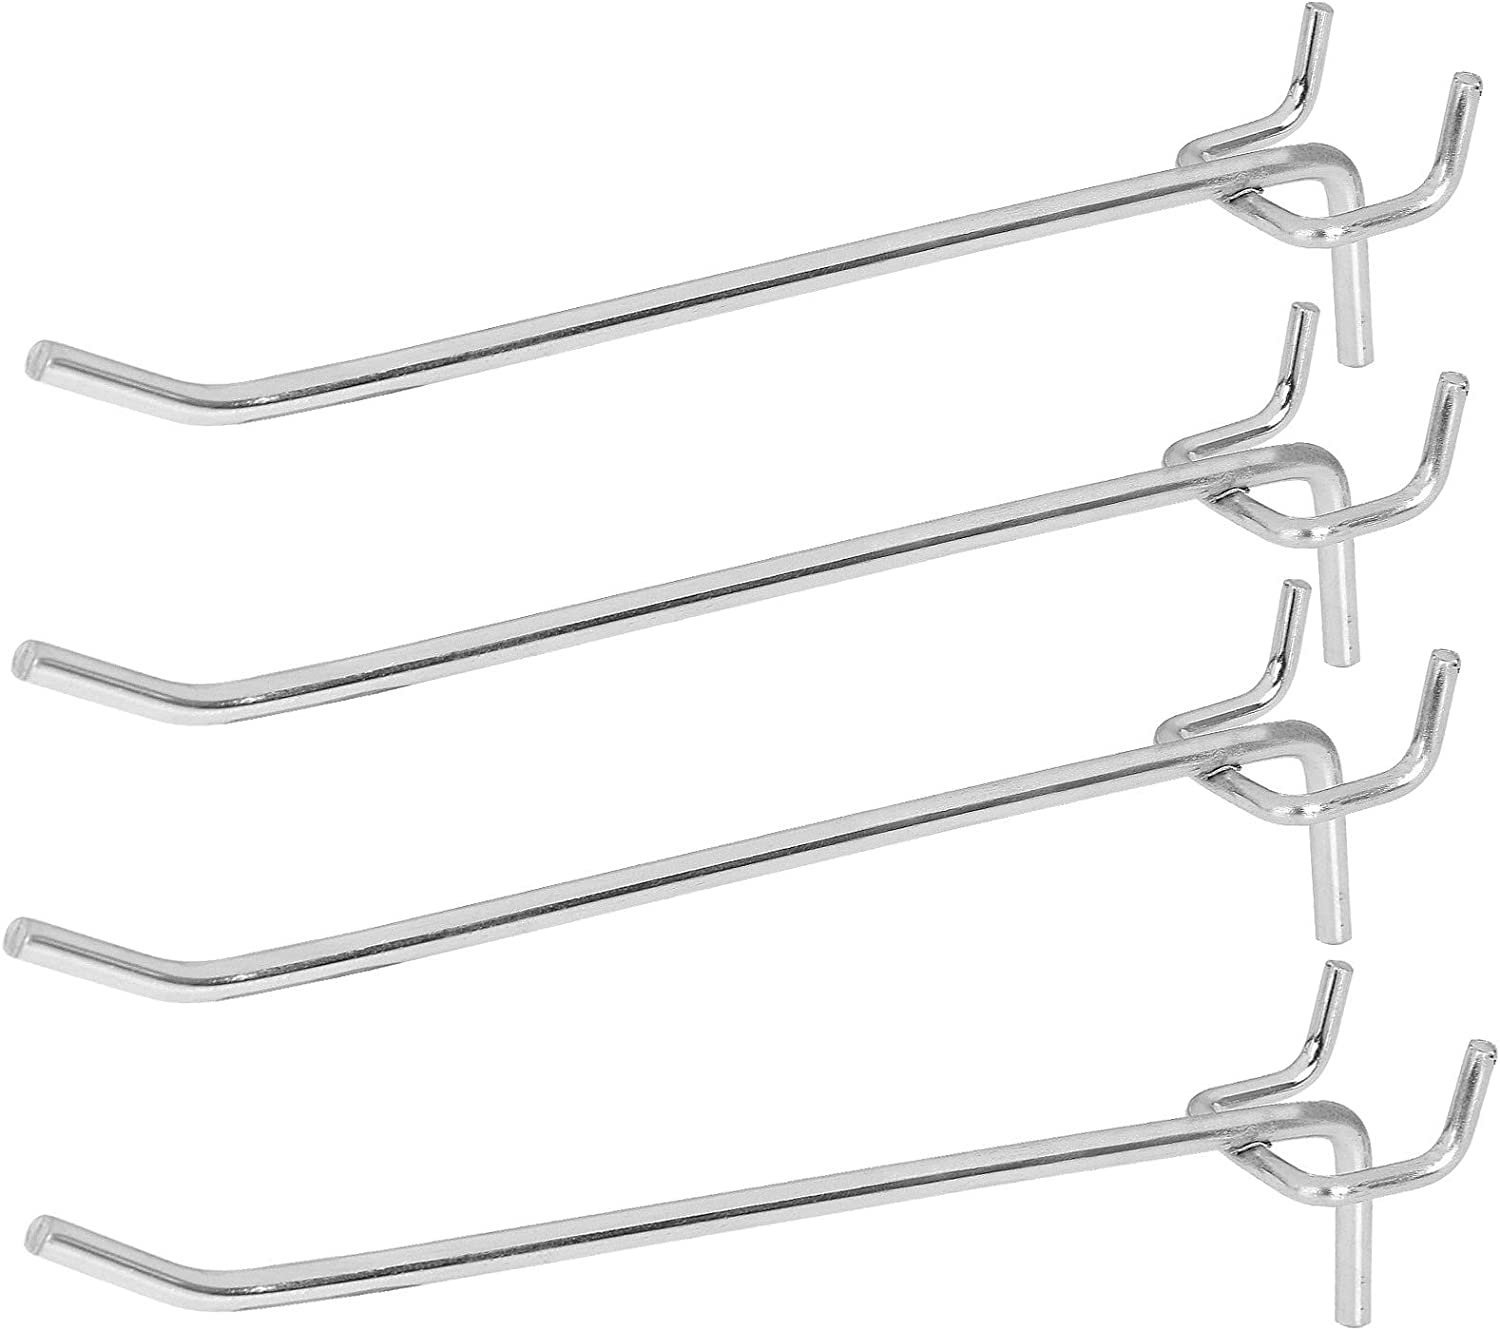 40 Pack 6 inch Metal Pegboard Hooks fits 1/8 Pegboard, Slatwall Holes and Grid Wire Panels, 1/8 inch Diameter PEG Board Pegboard Shelving Hooks for Garage, Office, Kitchen, Craft Shop, Retail Shop